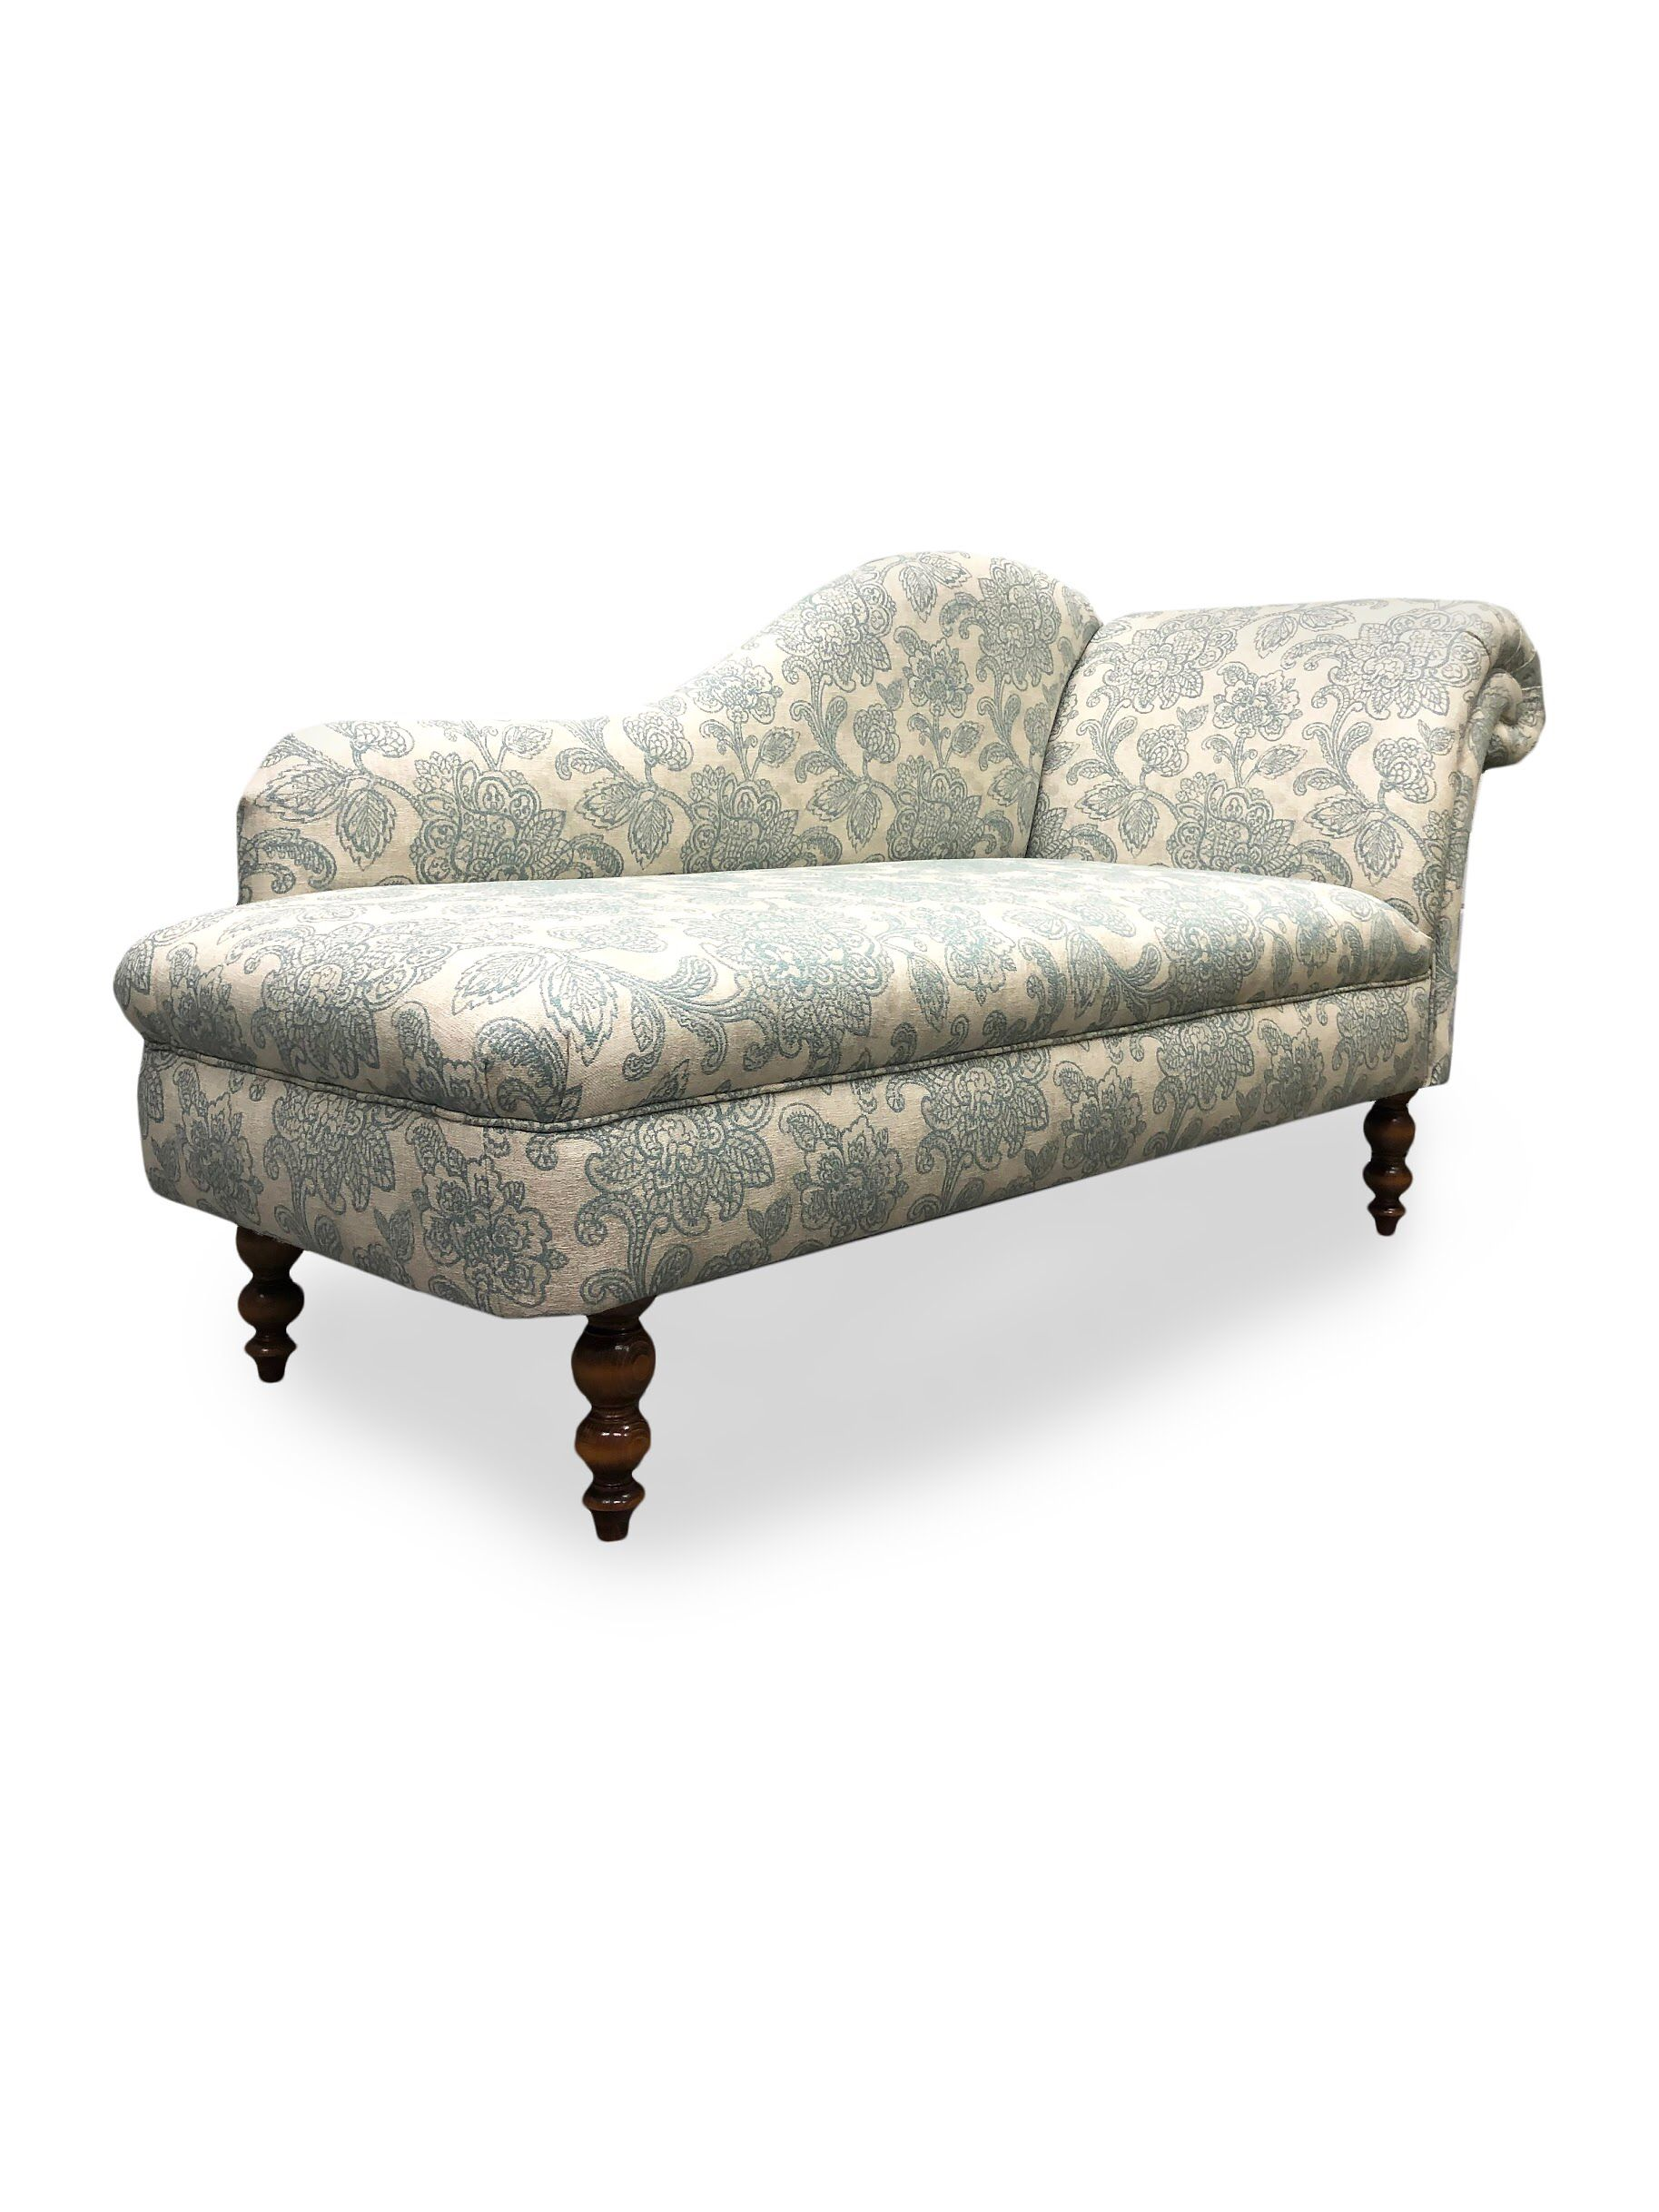 Antique style #chaise in @clarke_clarke_interiors Cranbrook #fabric on antique chaise lounge, antique fabric, antique glider, antique daybed, antique chair, antique parasol, antique egg, antique dresser, antique commode, antique books, antique chalice, antique french country, antique fainting couch, antique lighting, antique beds, antique fountain, antique sofas, antique recliner, antique armchairs, antique chaise couch,